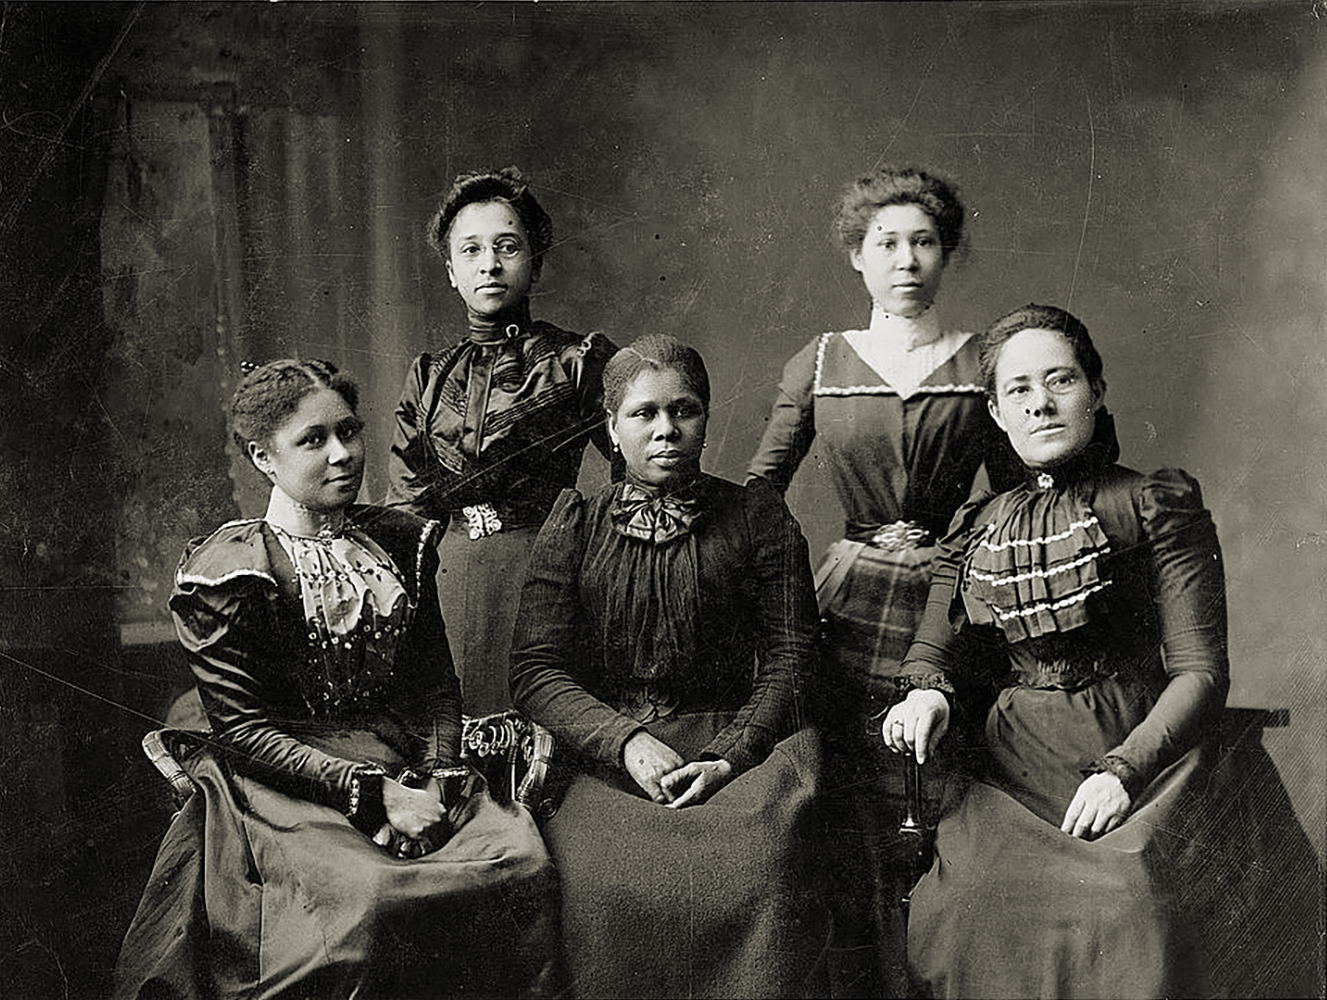 Black Women's Integral Role in the Women's Suffrage Movement